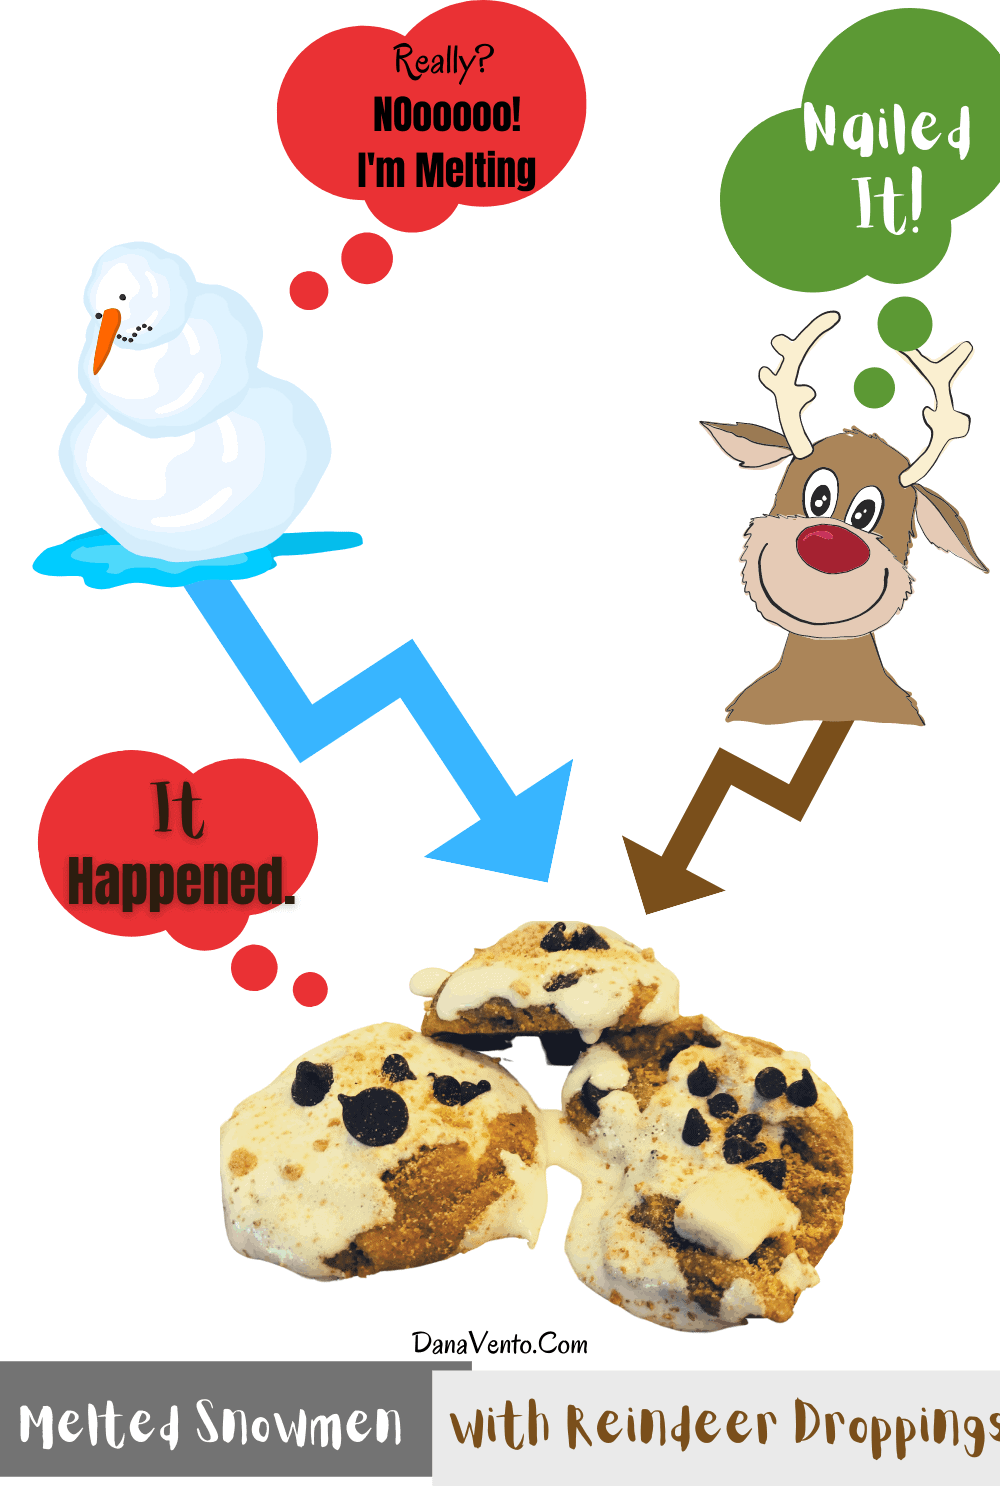 How Melted Snowmen with Reindeer Droppings Happened